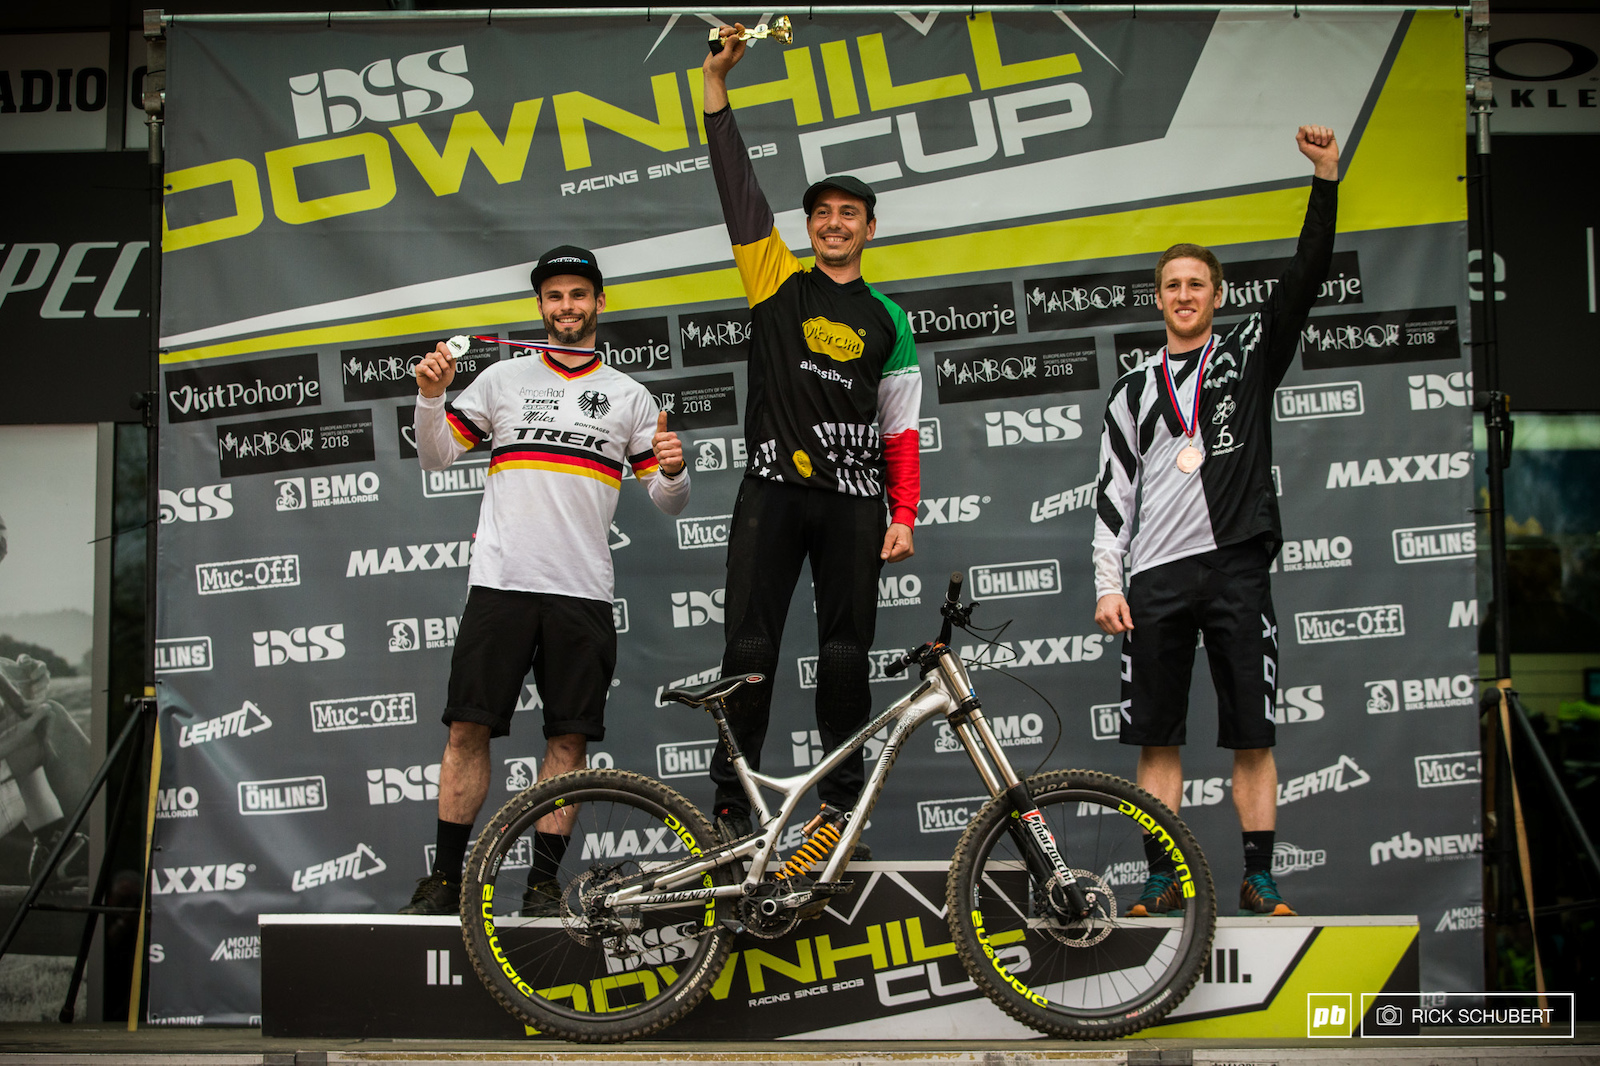 Podium Masters with Dominik Dierich Fabrizio Dragoni and Billy Caroli